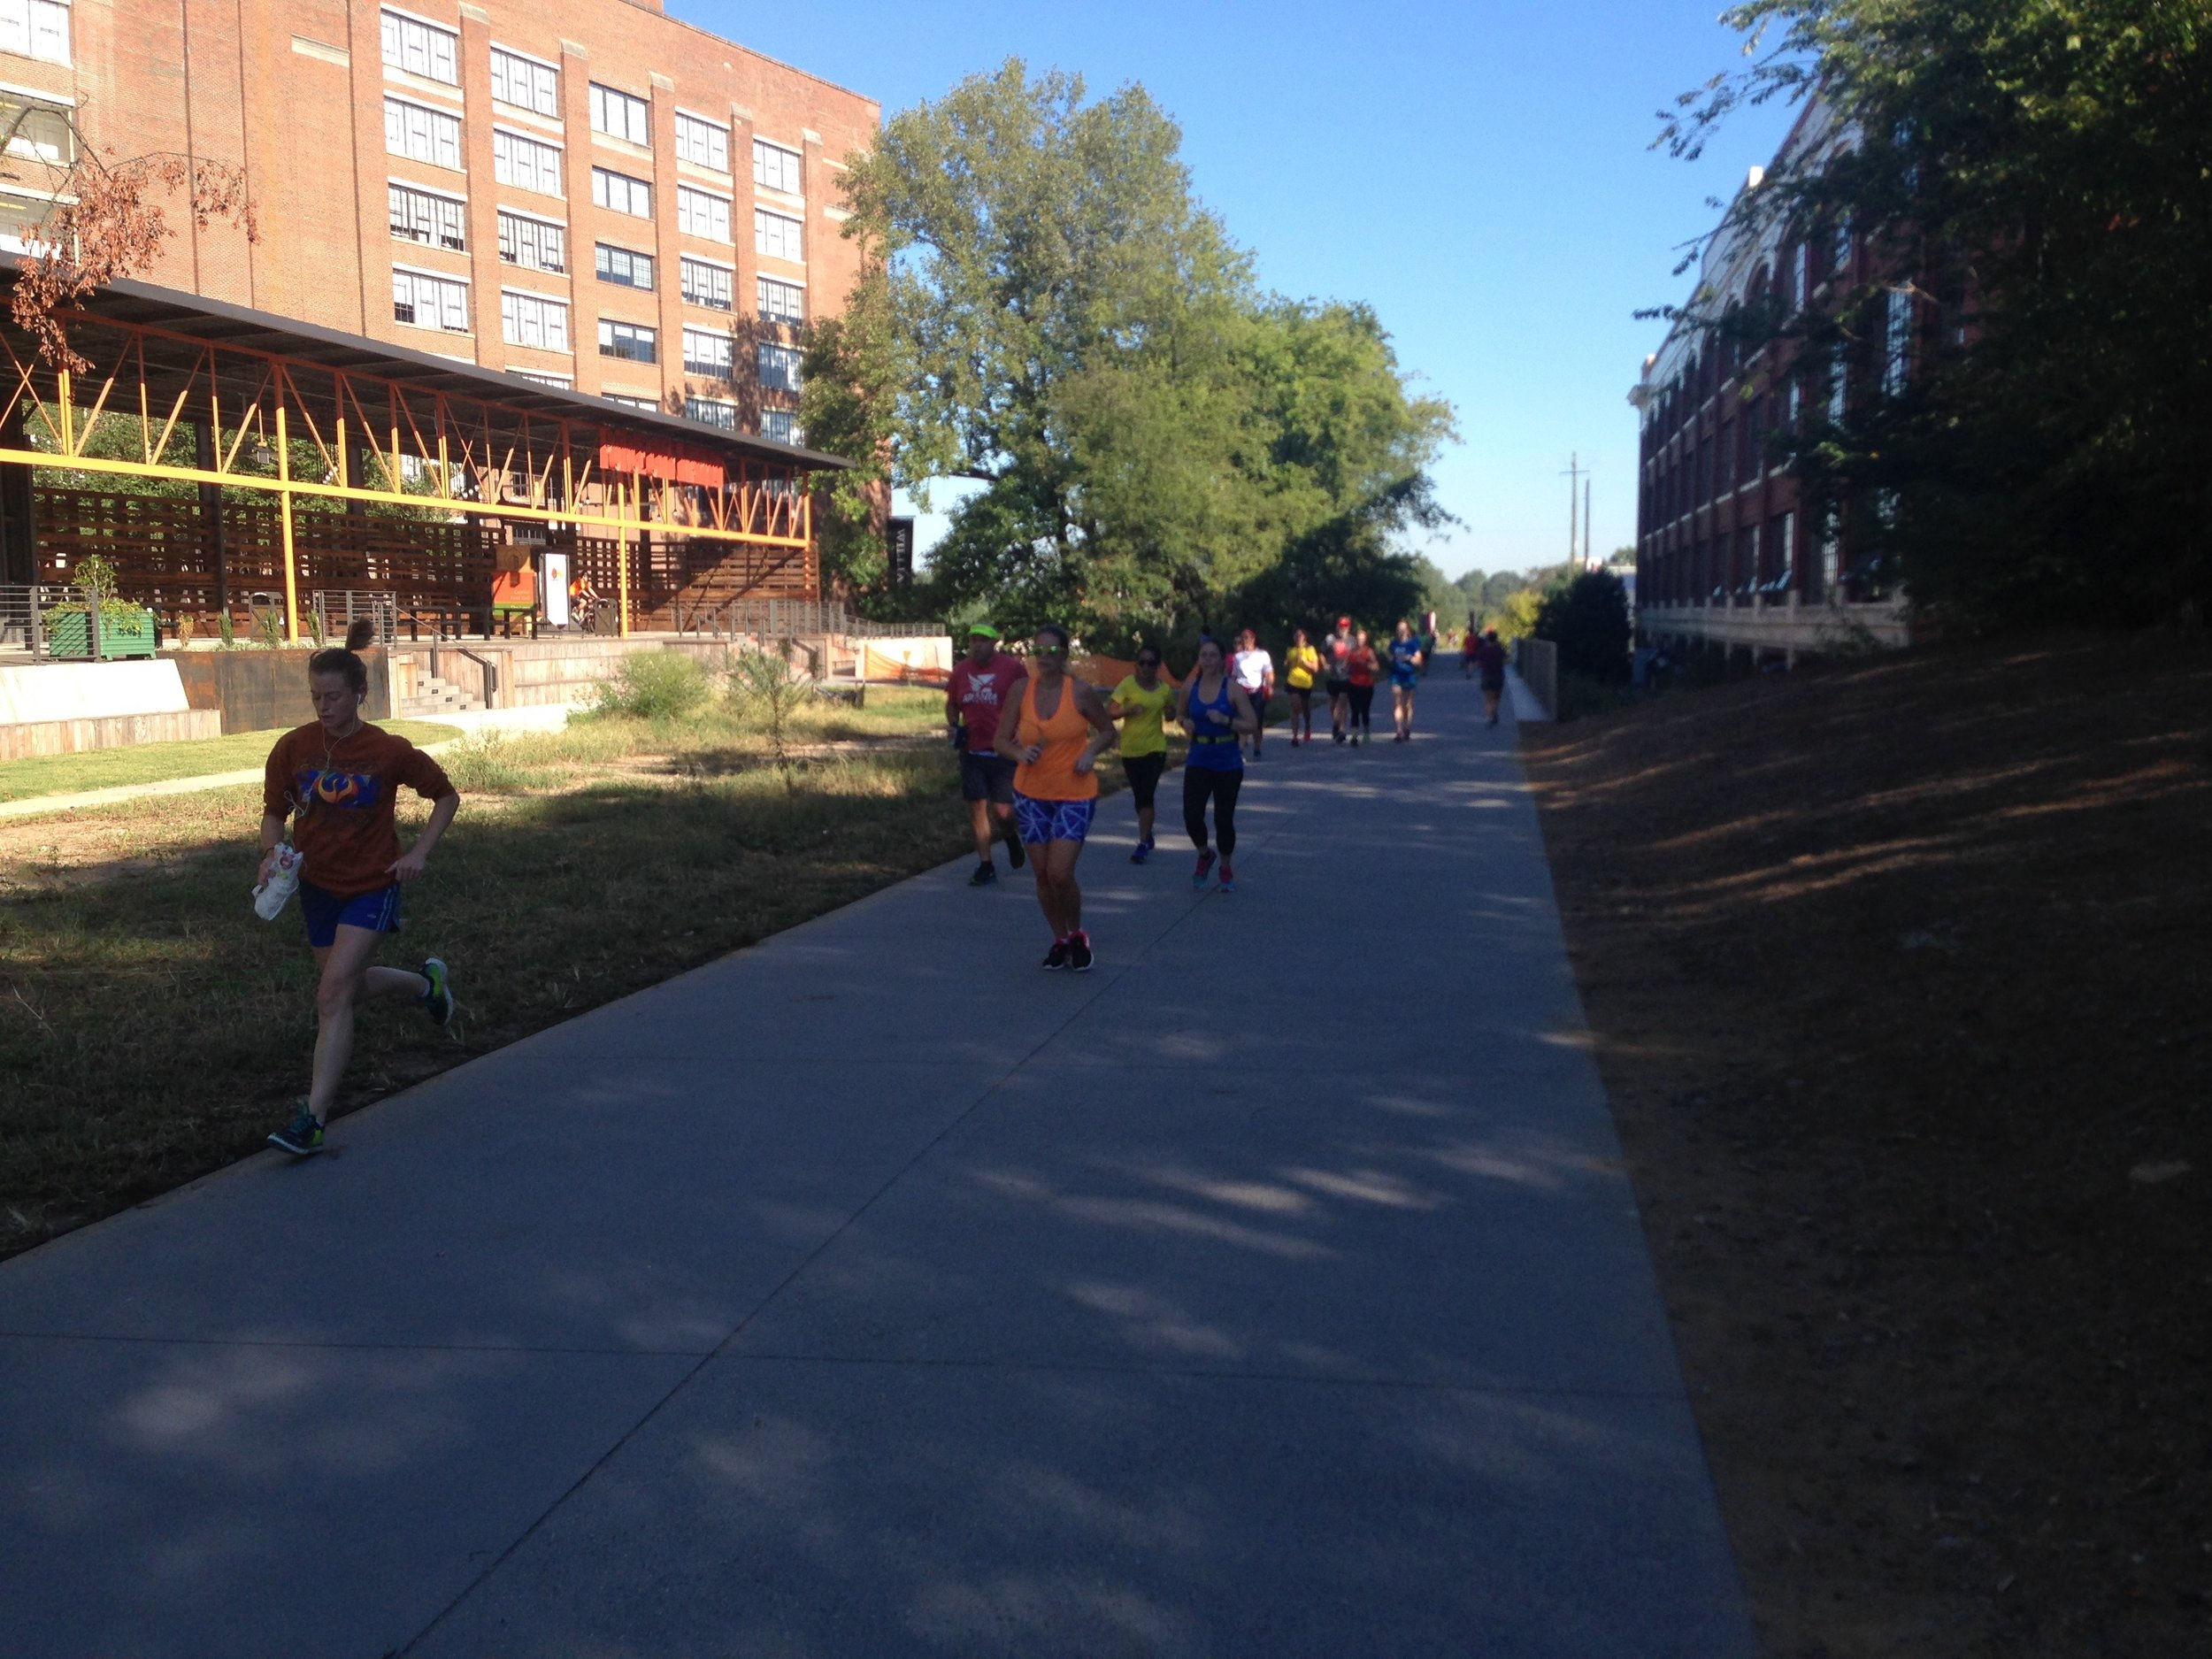 Runners on the Atlanta Beltline